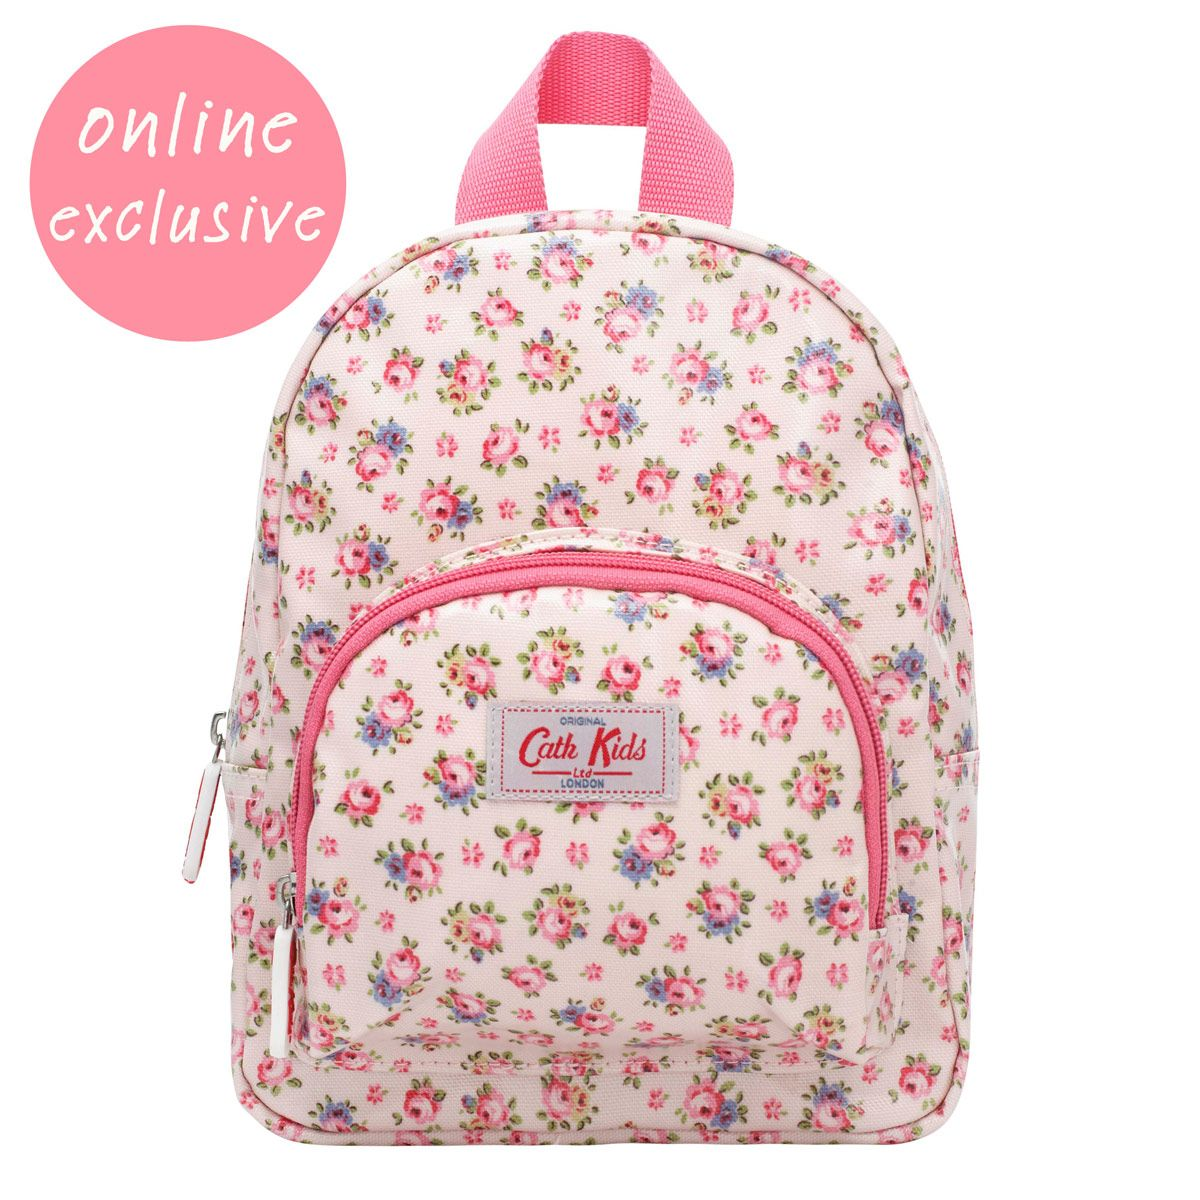 Cath Kidston Toddler Back Pack Travelling With Kids Childrens Bags Hampton Rose Mini Backpack